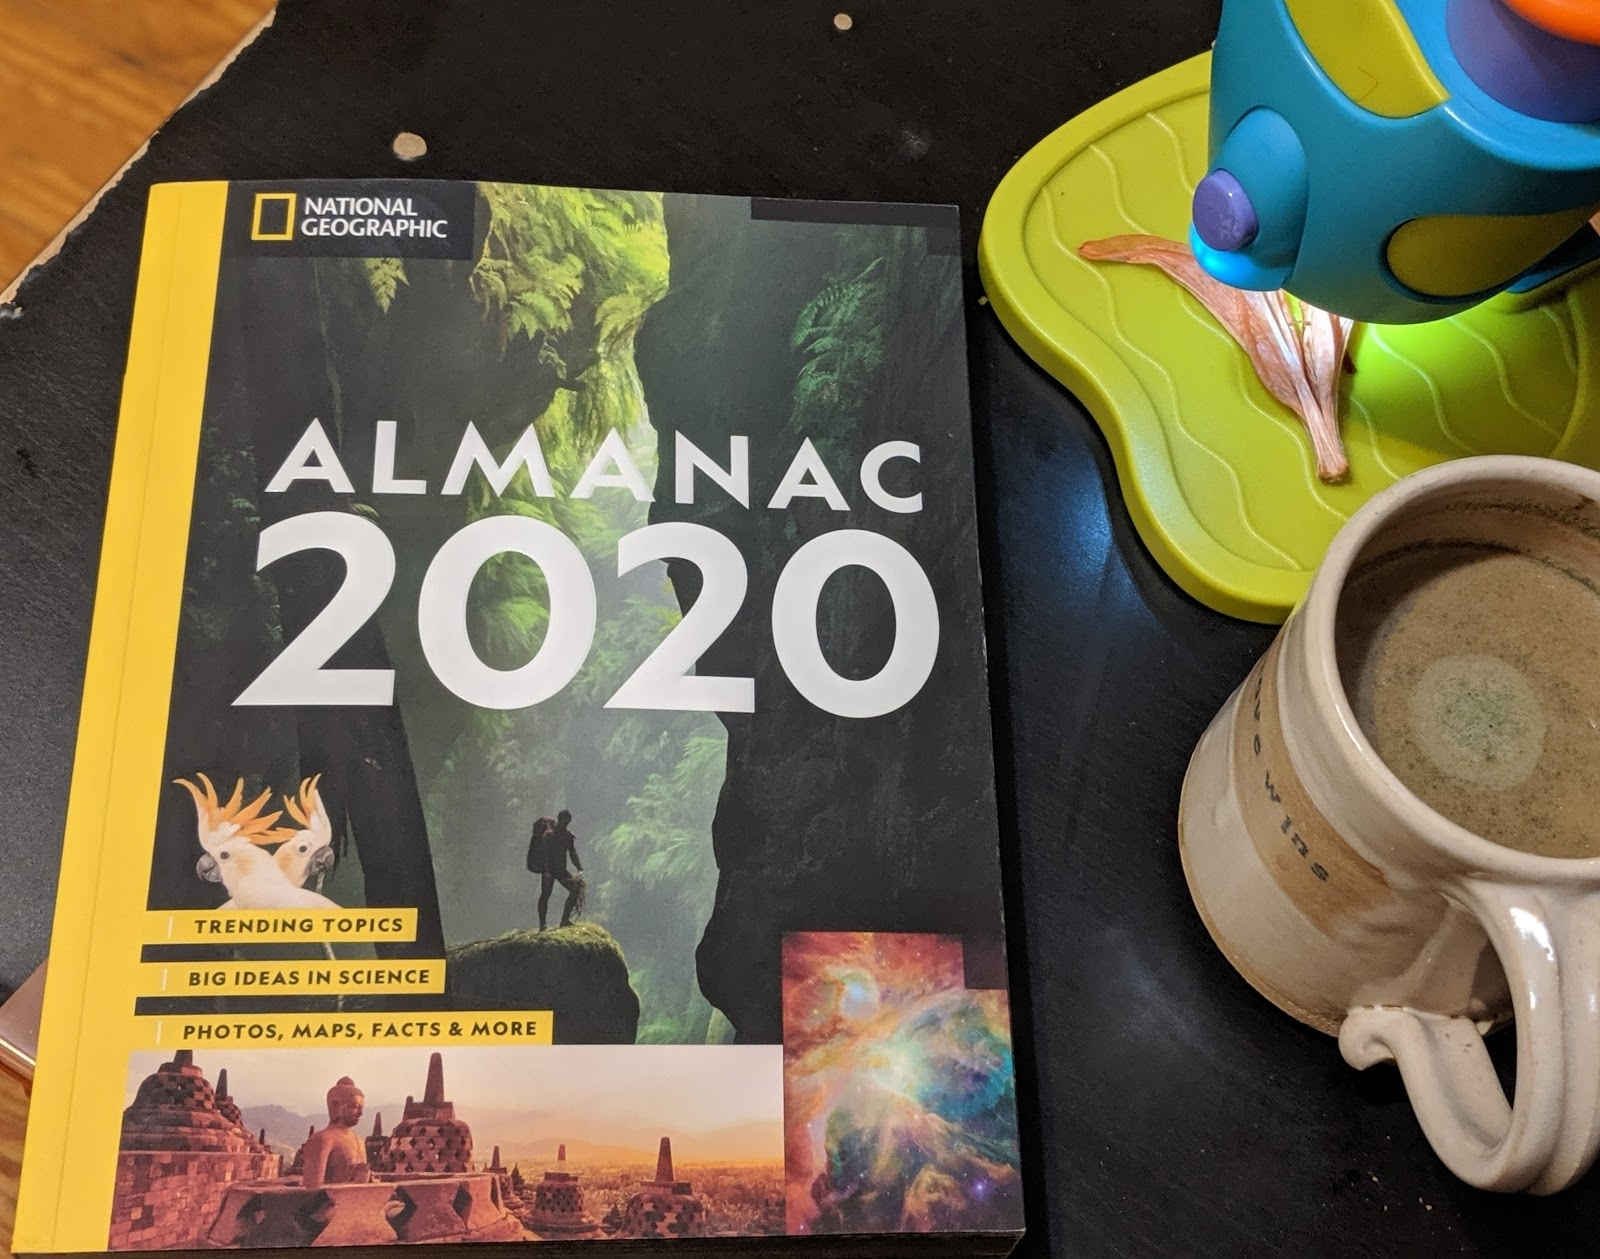 National Geographic's Almanac 2020 in Chick To By In 2020